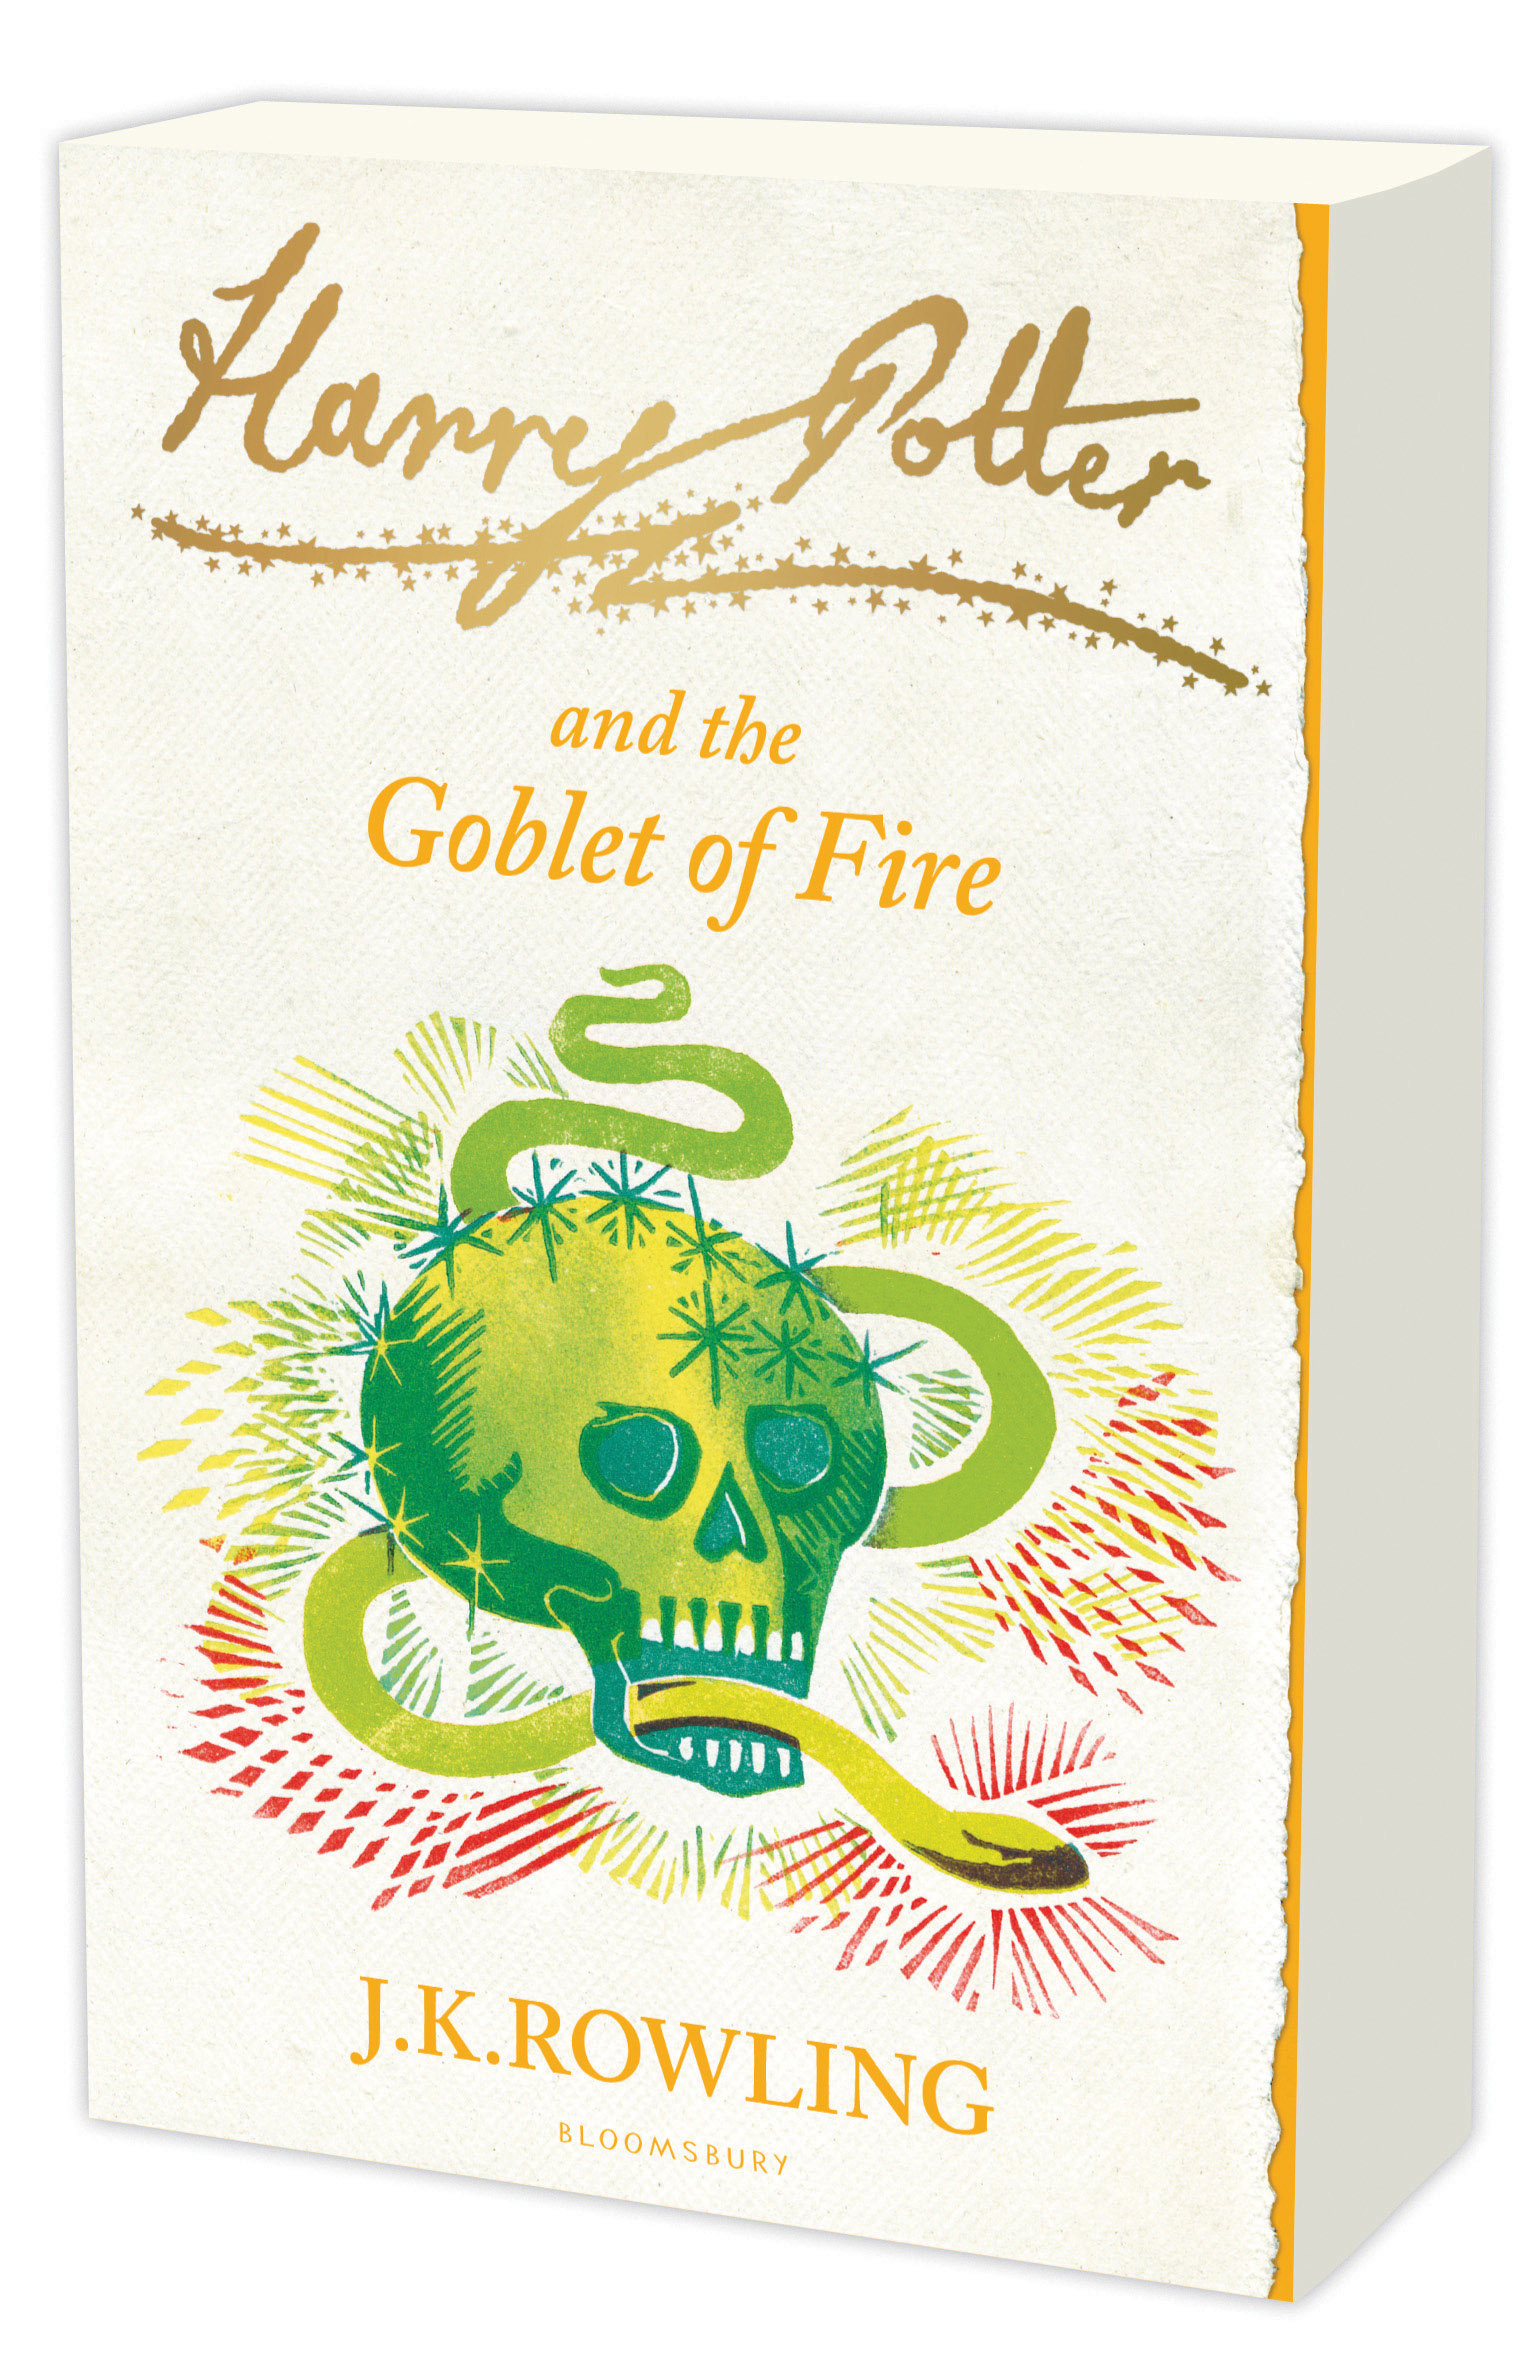 Harry Potter and the Goblet of Fire signature edition by J.K. Rowling, ISBN: 9781408810576